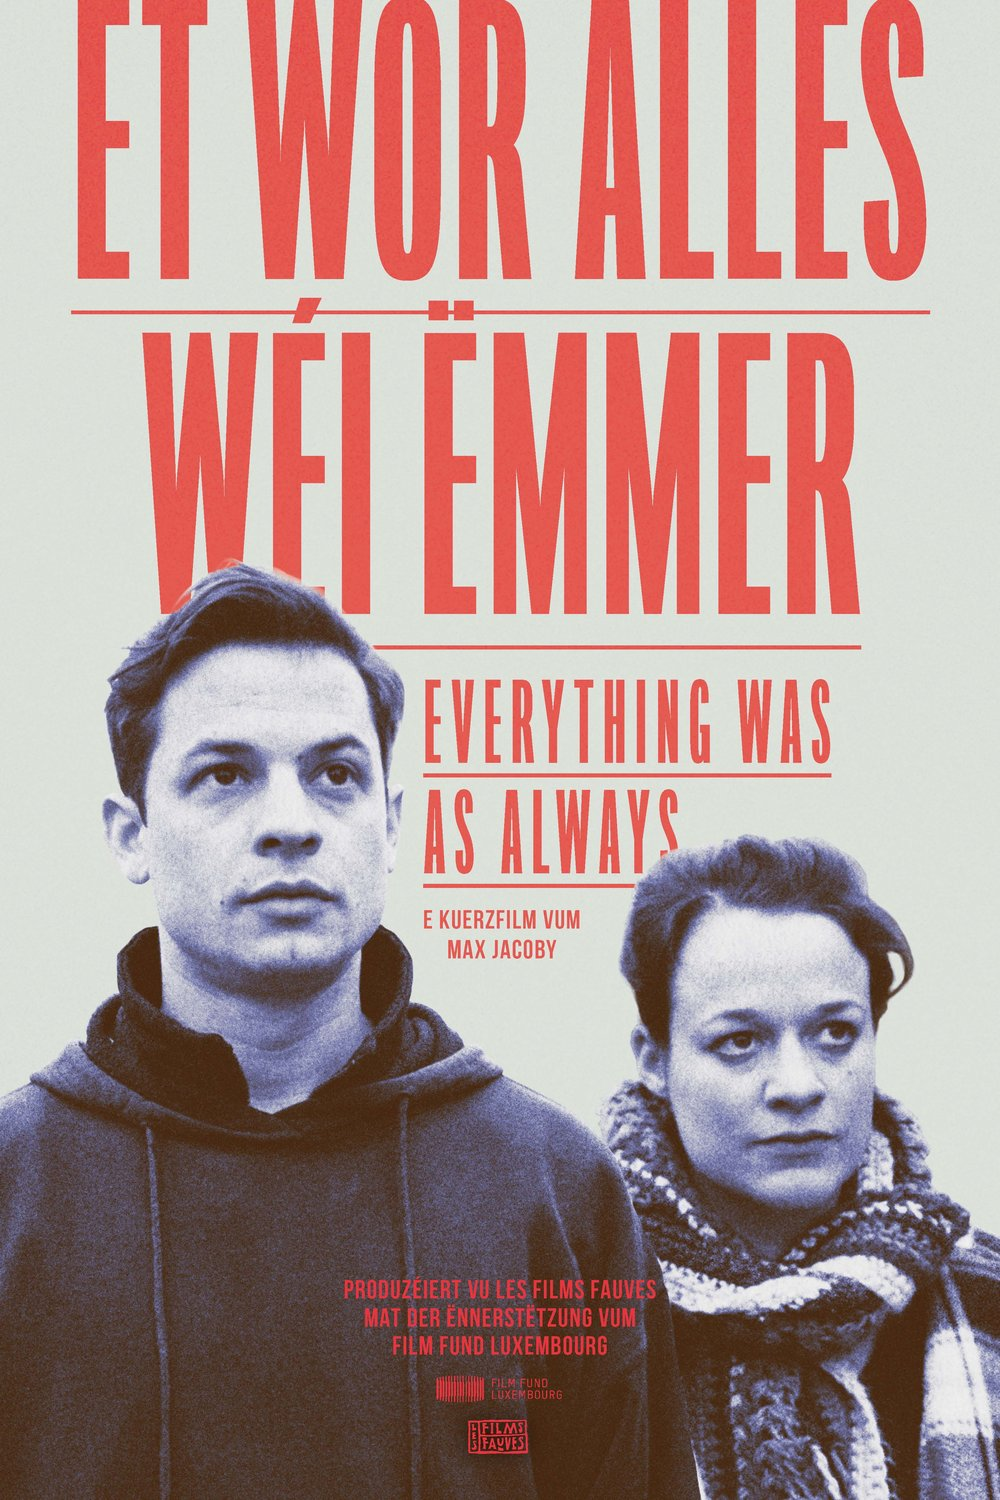 ET WOR ALLES WEI EMMER / EVERYTHING WAS AS ALWAYS - Directed by Max JACOBYScript by Max Jacoby & Govinda VAN MAELEWith Anouk WAGENER, Philippe DECKER & Roland GELHAUSENYear: 2016Original Version: LuxembourgishGenre: Family, DramaRunning Time: 19minProduction companies: LES FILMS FAUVES (LU)